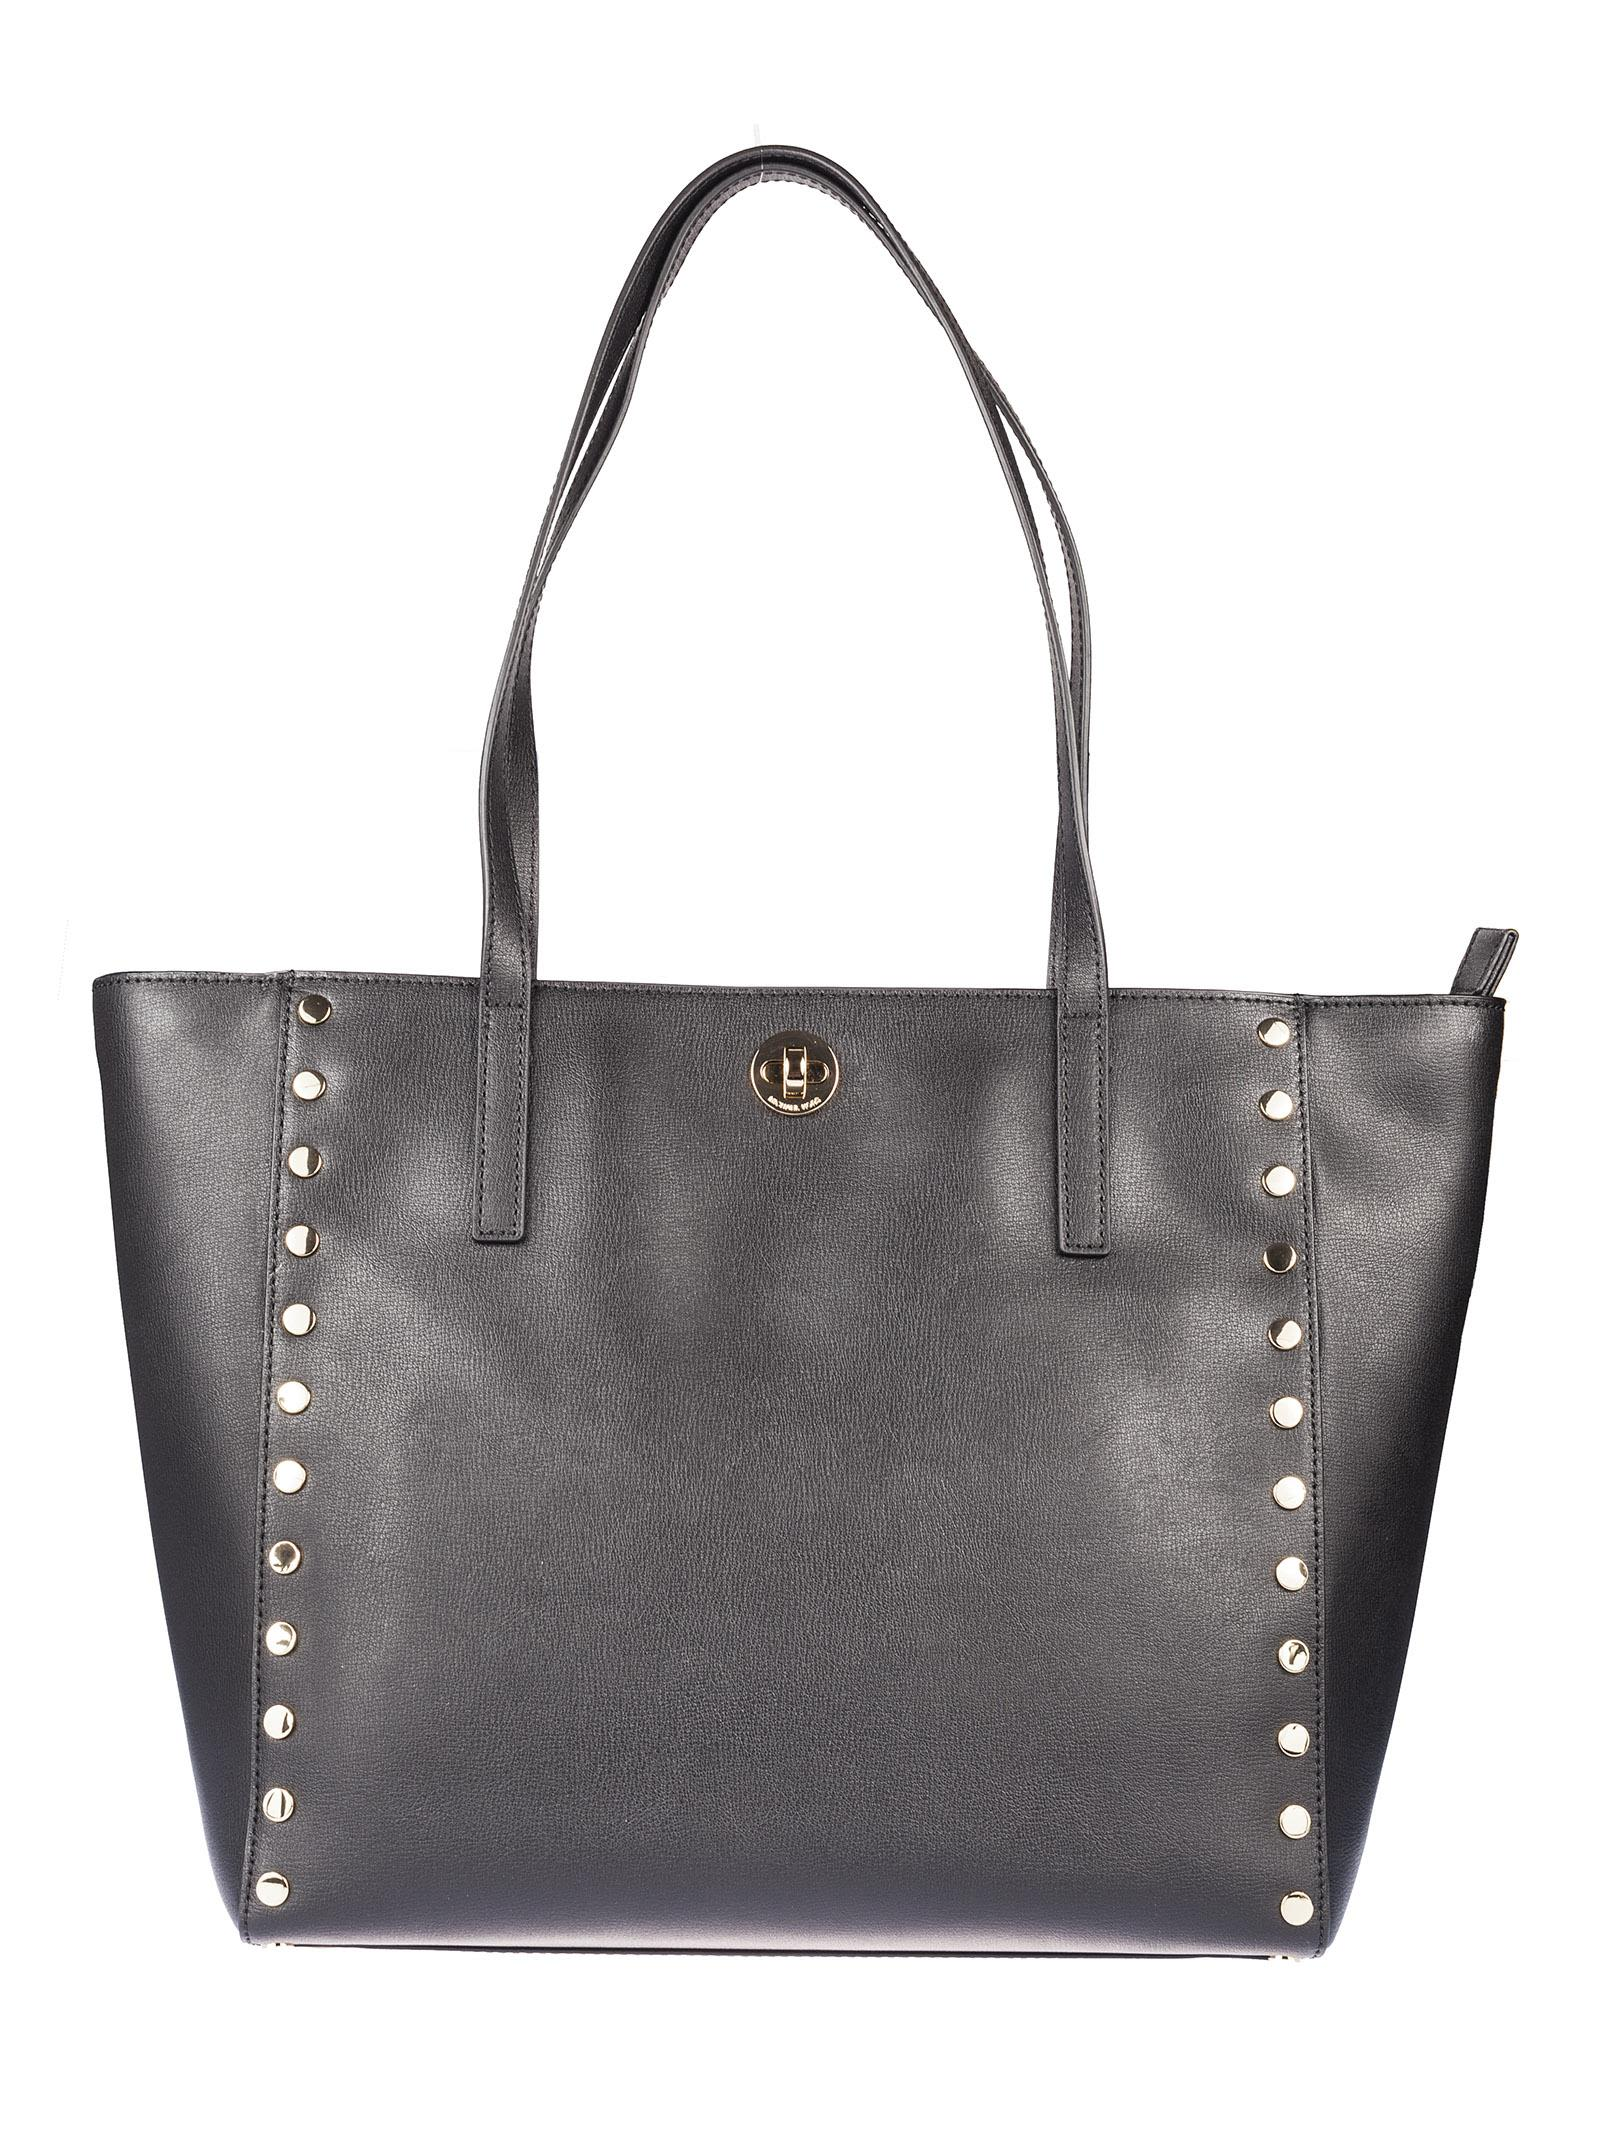 Michael Kors Rivington Large Studded Tote